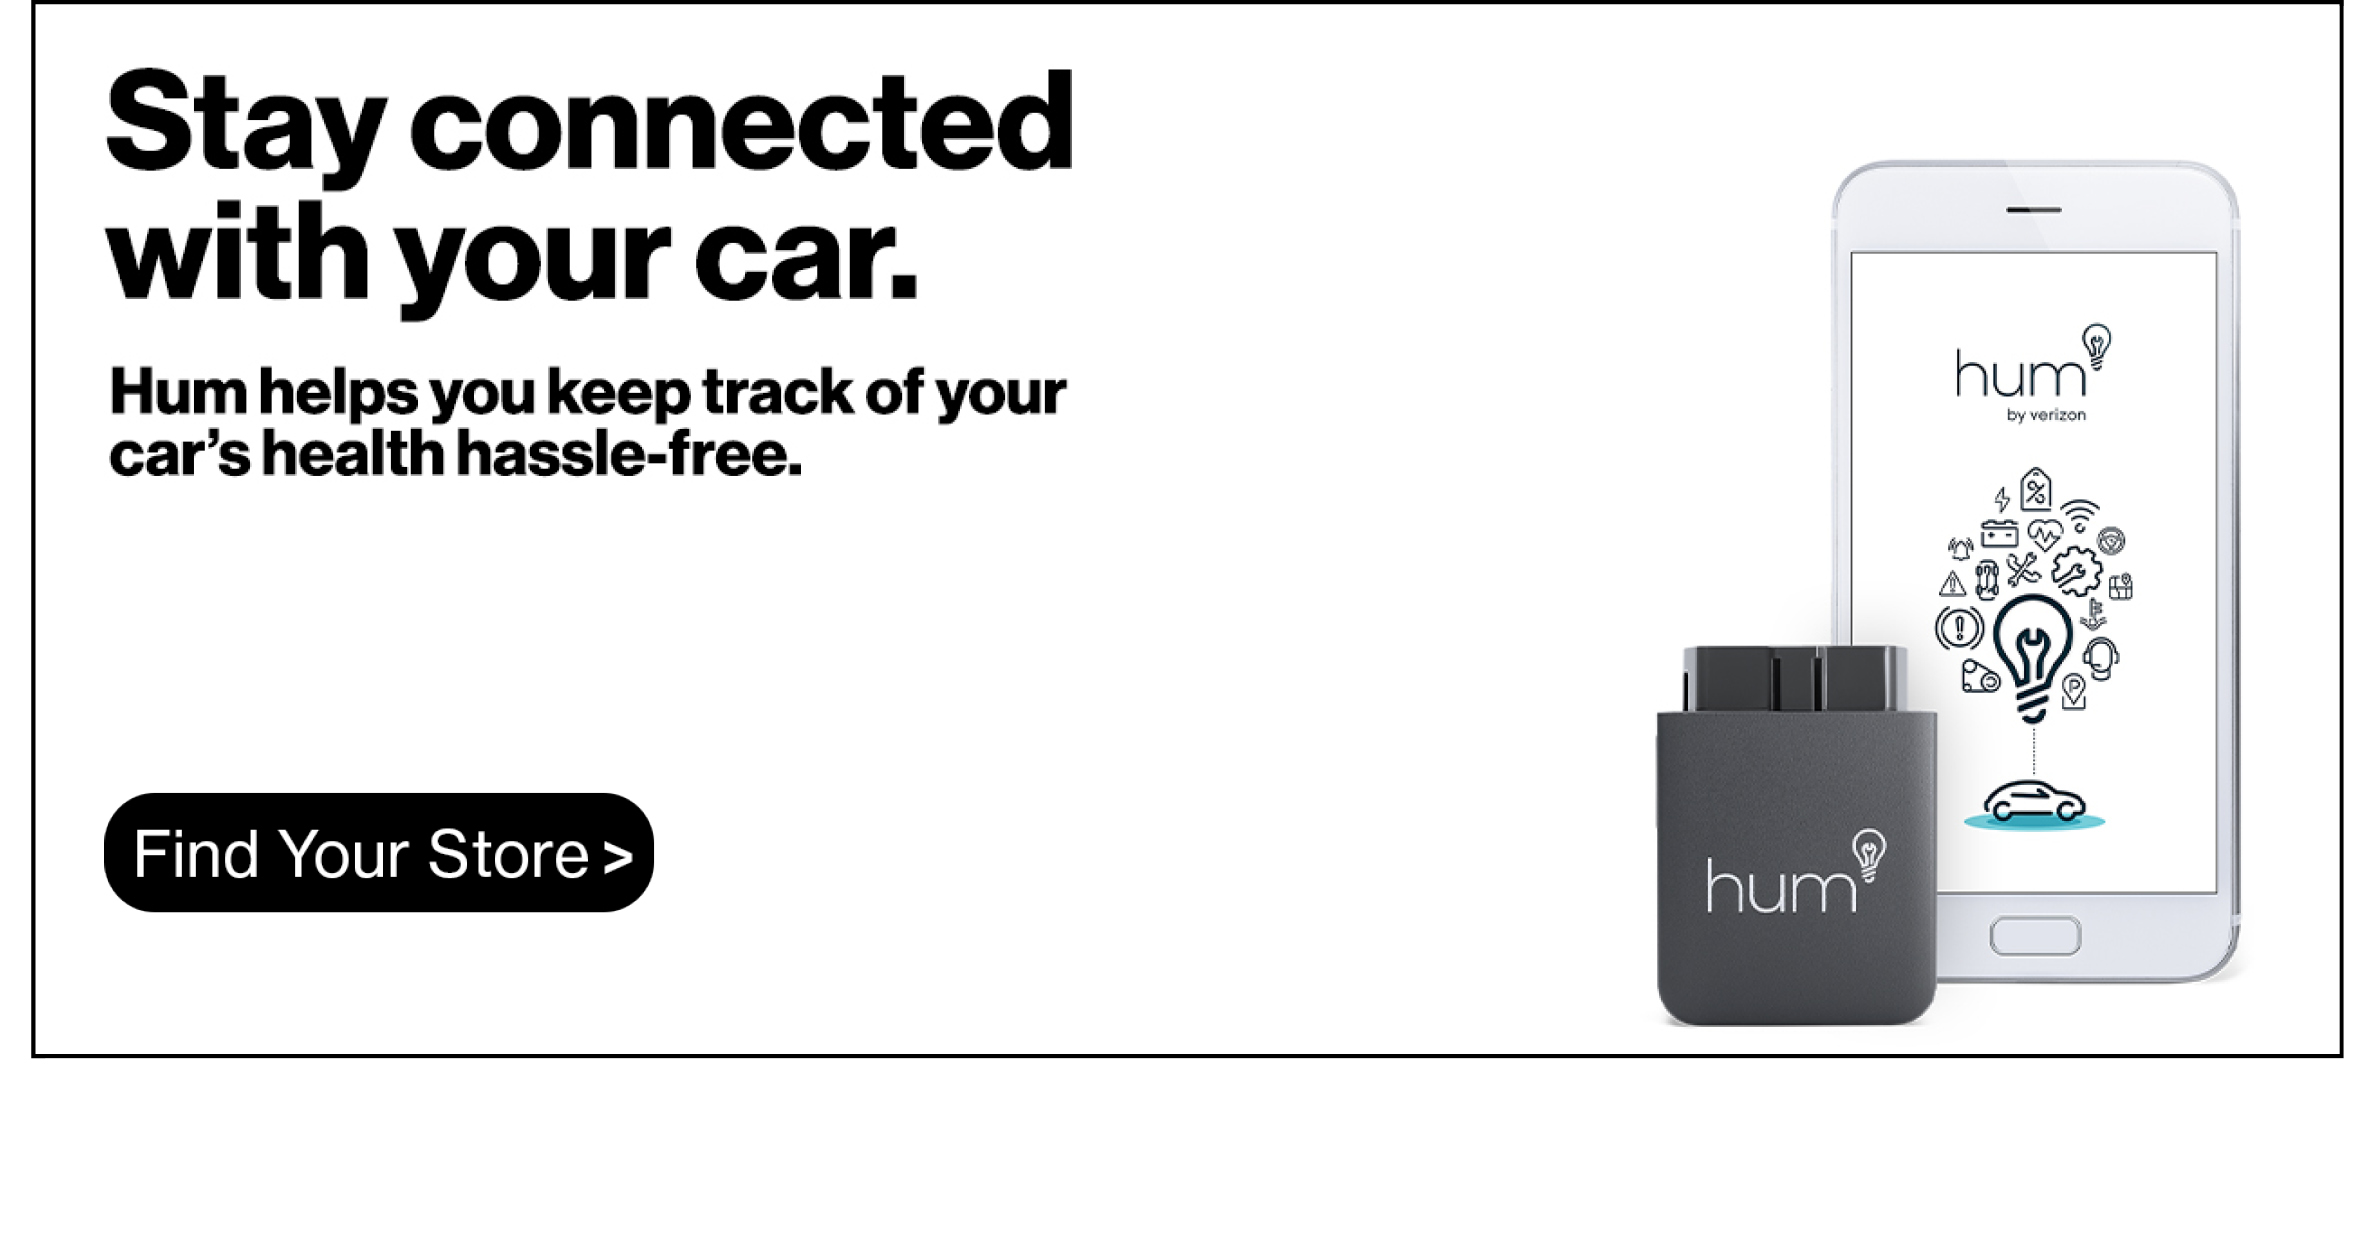 Stay connected with your car with Hum from Verizon.